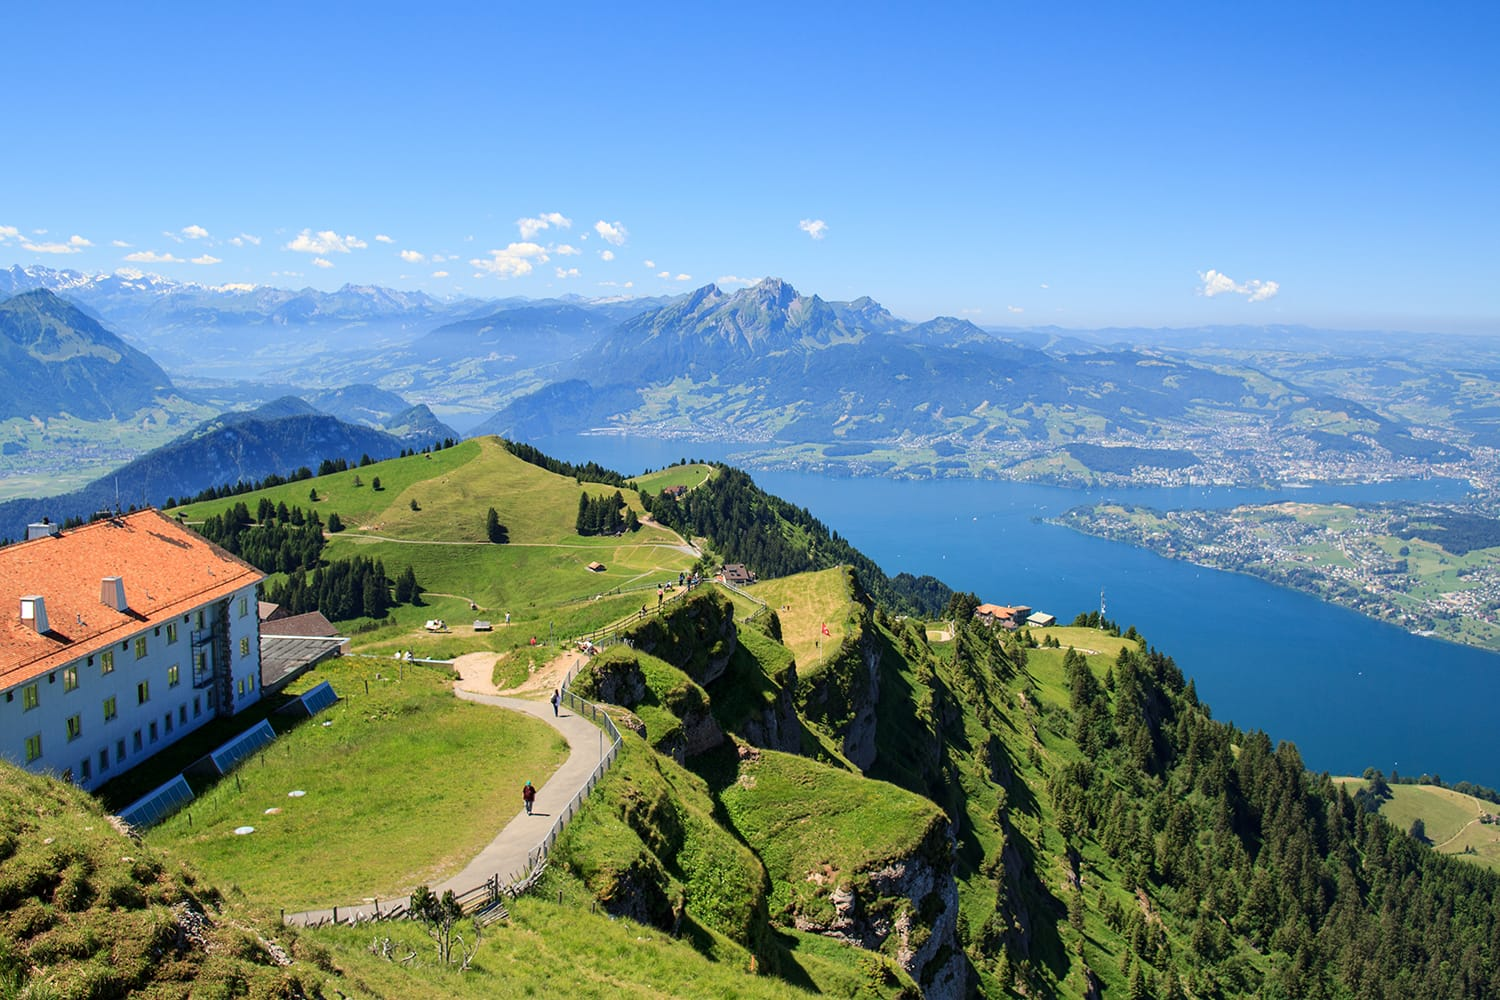 View from the Mount Rigi, Lucerne, Switzerland